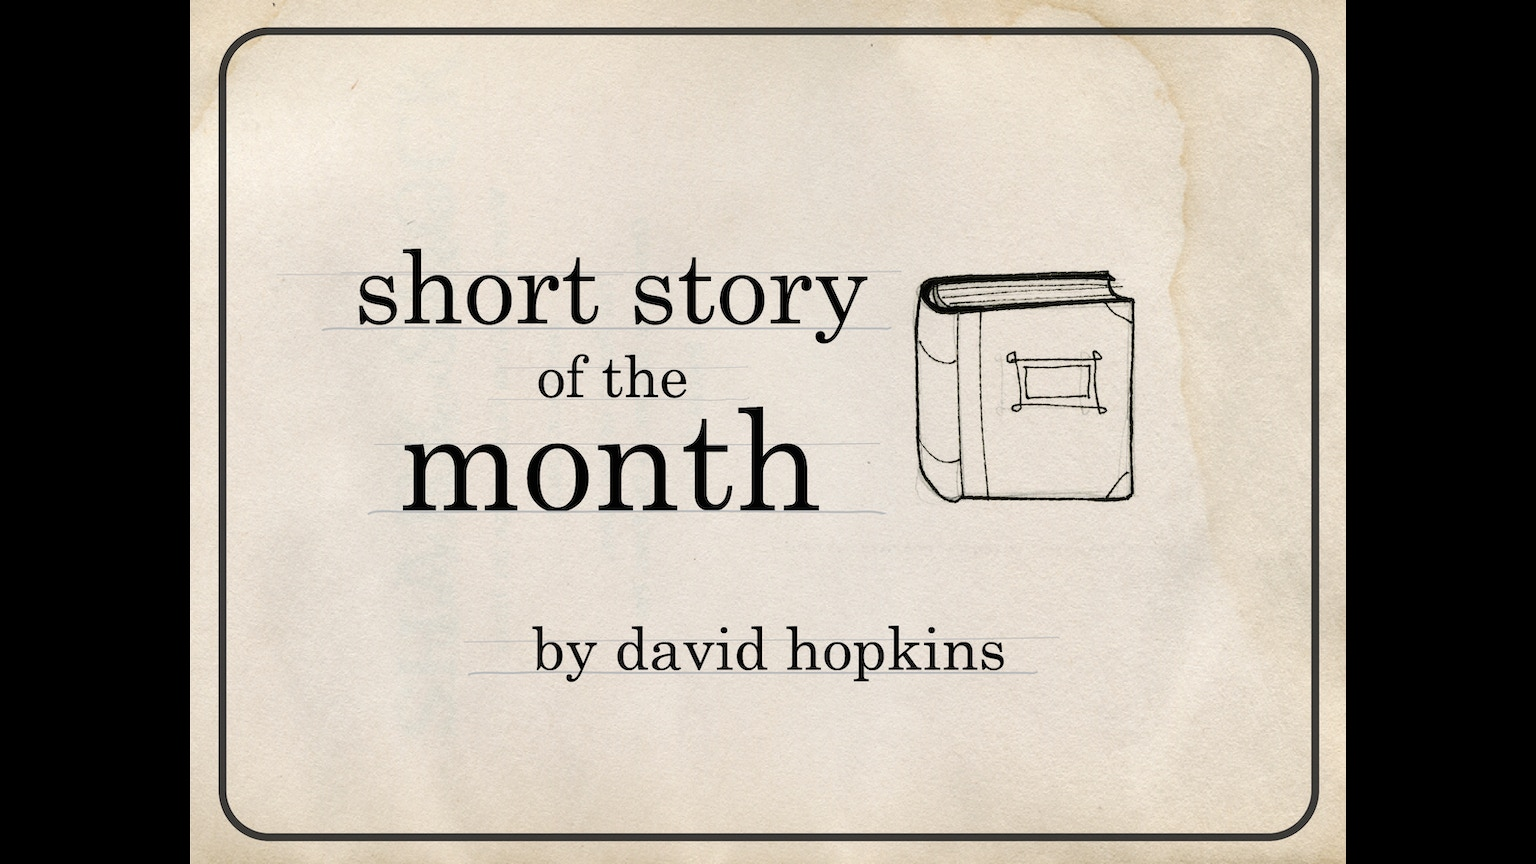 Have you ever written a book or short story?